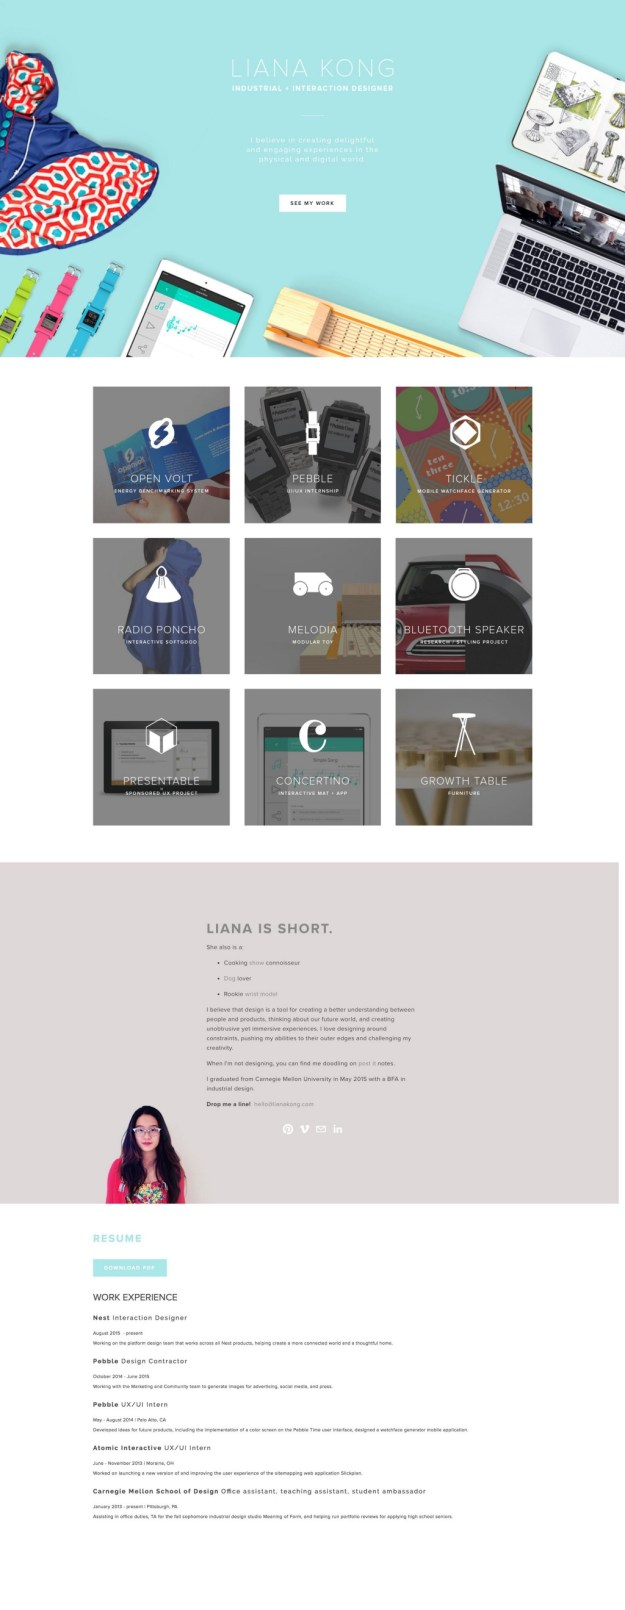 1*asllMyzrqMxc6vAsy3w7JA 5 great design portfolios from students who are hired by Google and Facebook Design Random